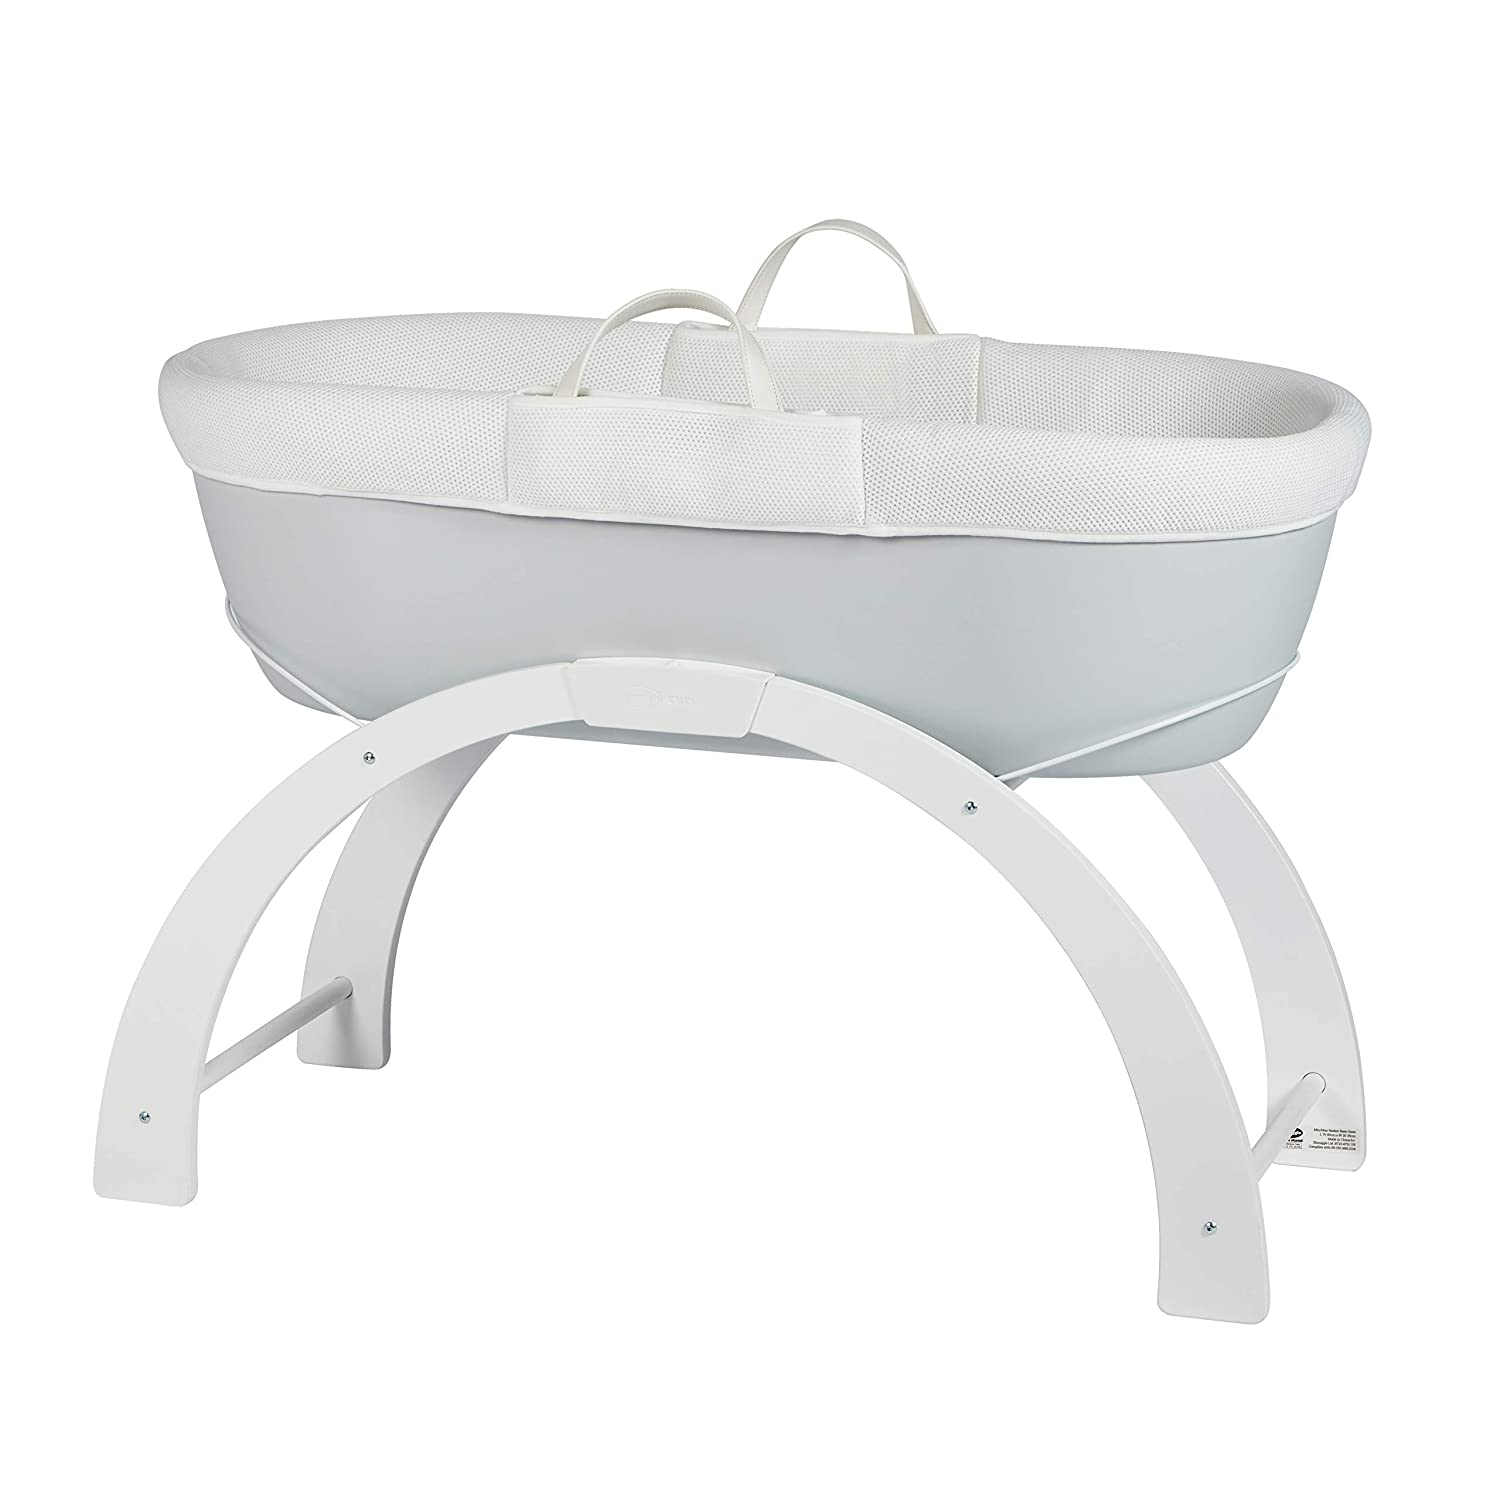 Top 10 Best Moses Baskets (2020 Reviews & Buying Guide) 5